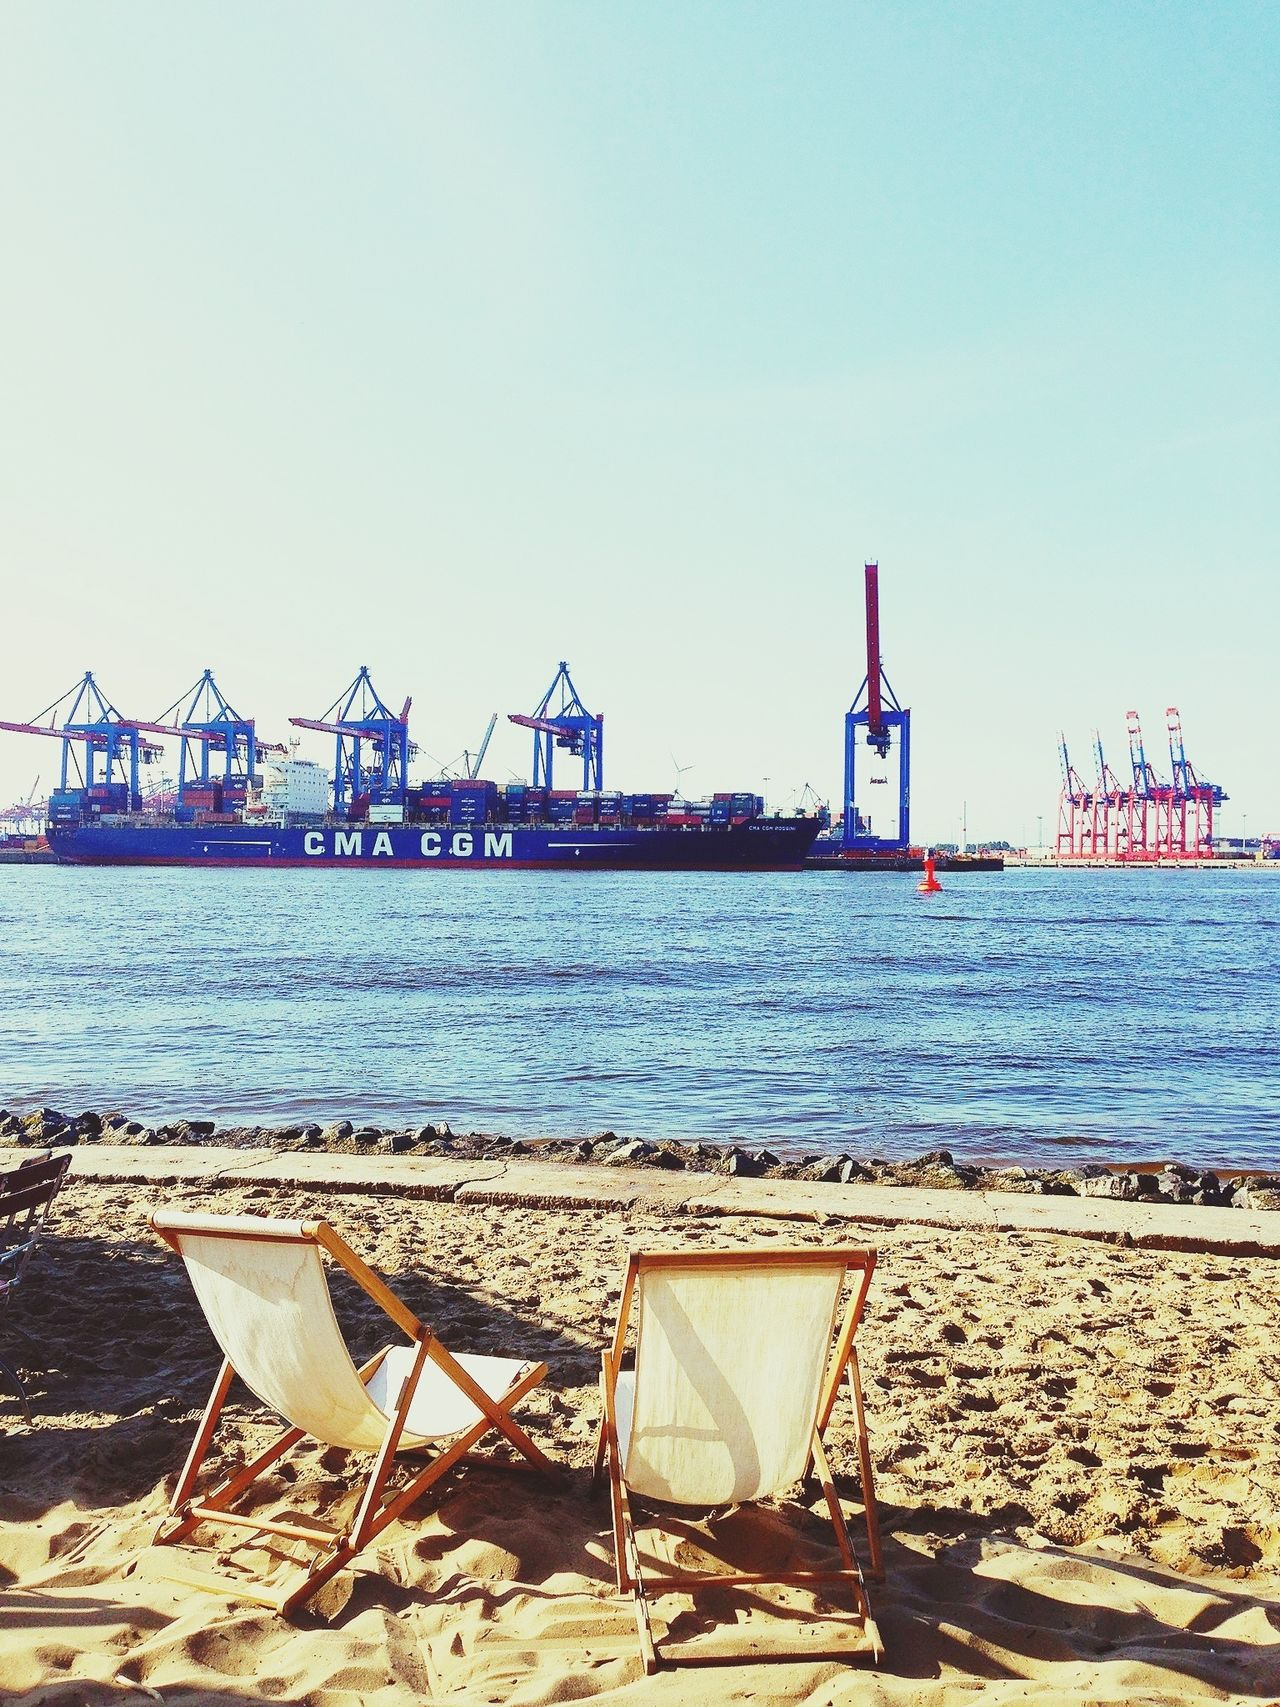 Container ship docked at port with empty deck chairs in foreground